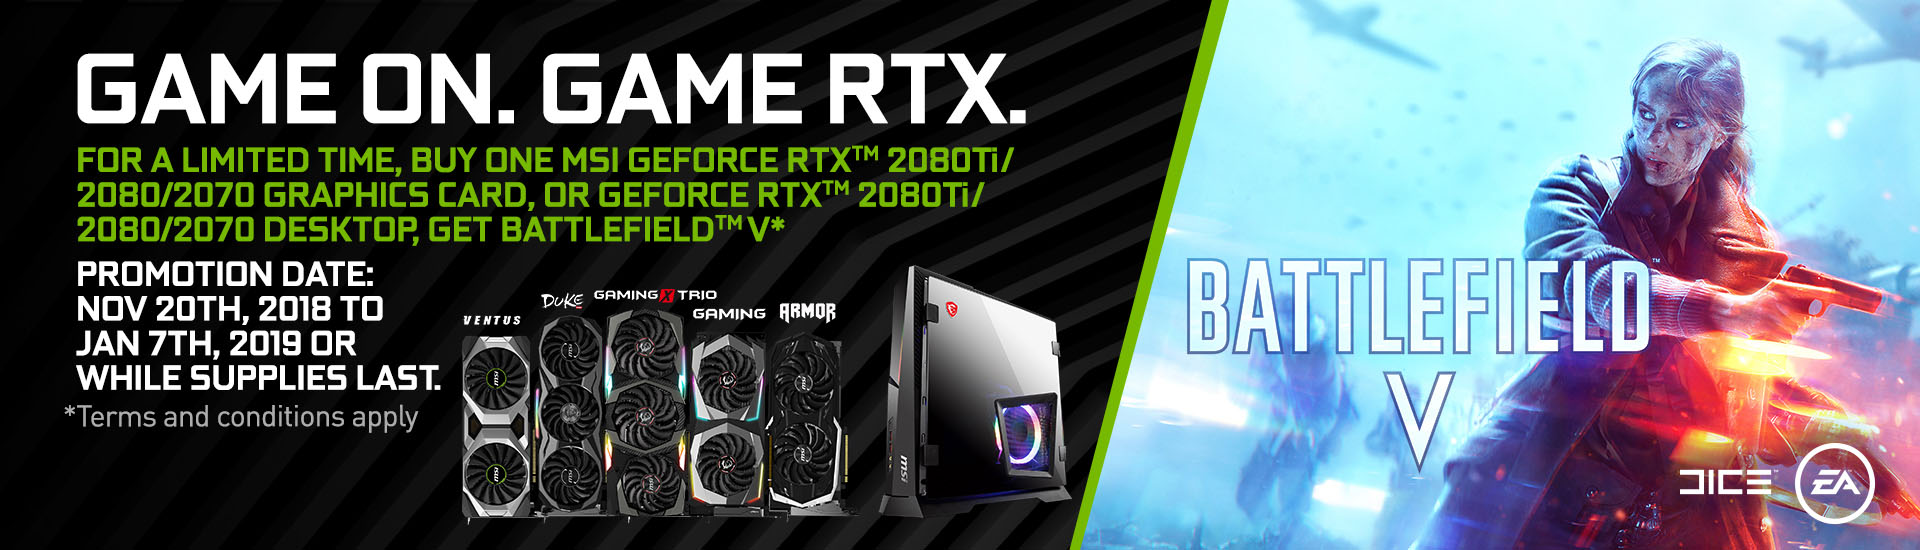 GAME ON. GAME RTX.